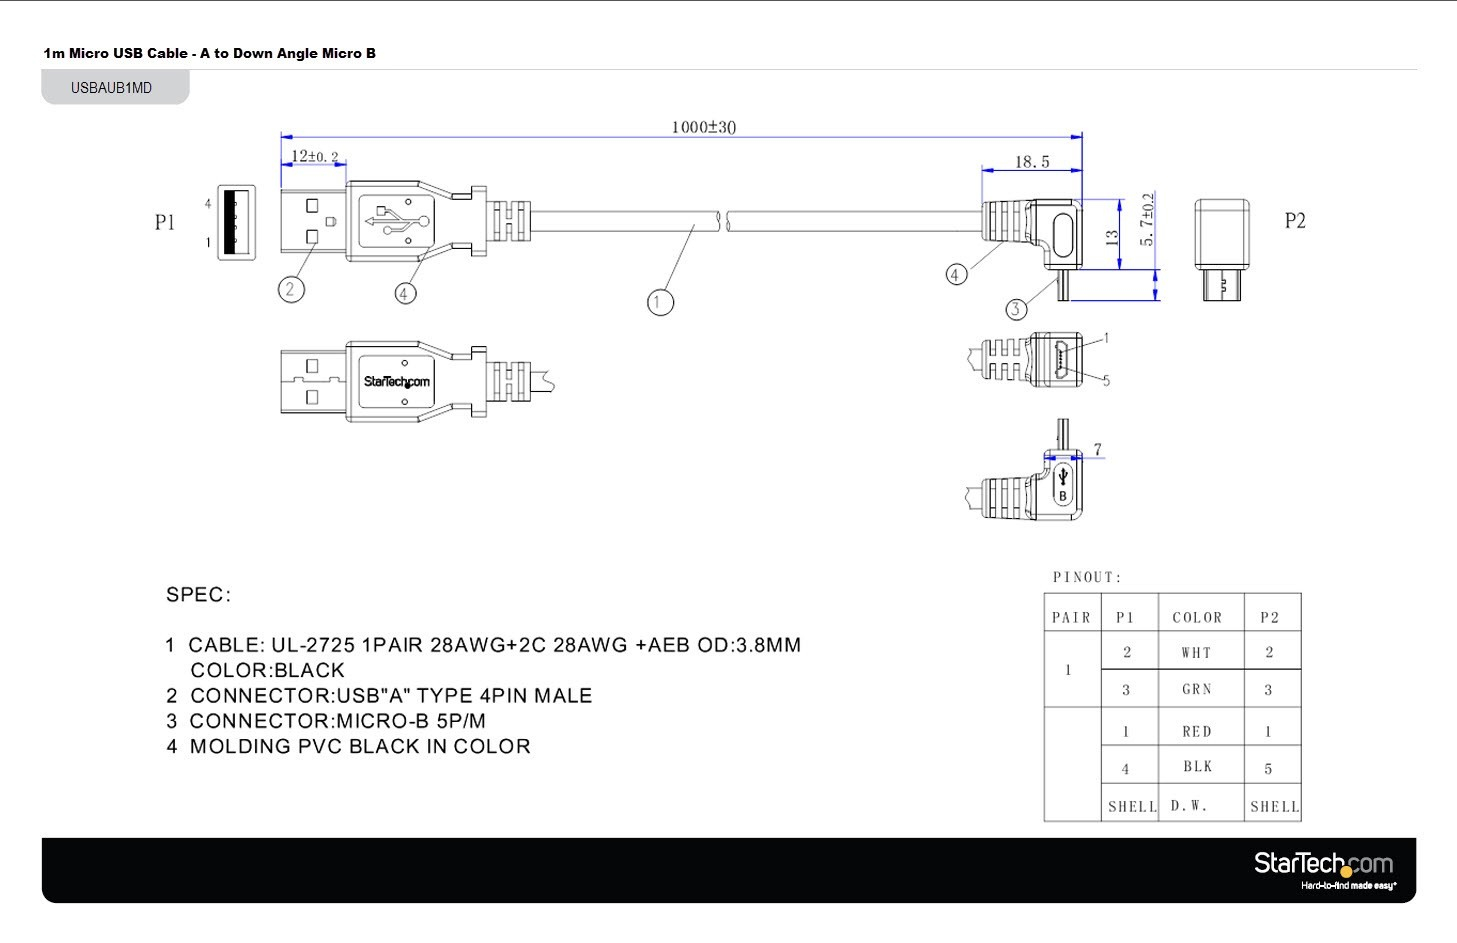 hdmi over cat5 wiring diagram Collection-Cable Wire Diagram Unique Micro Usb to Hdmi Wiring Diagram 7-s